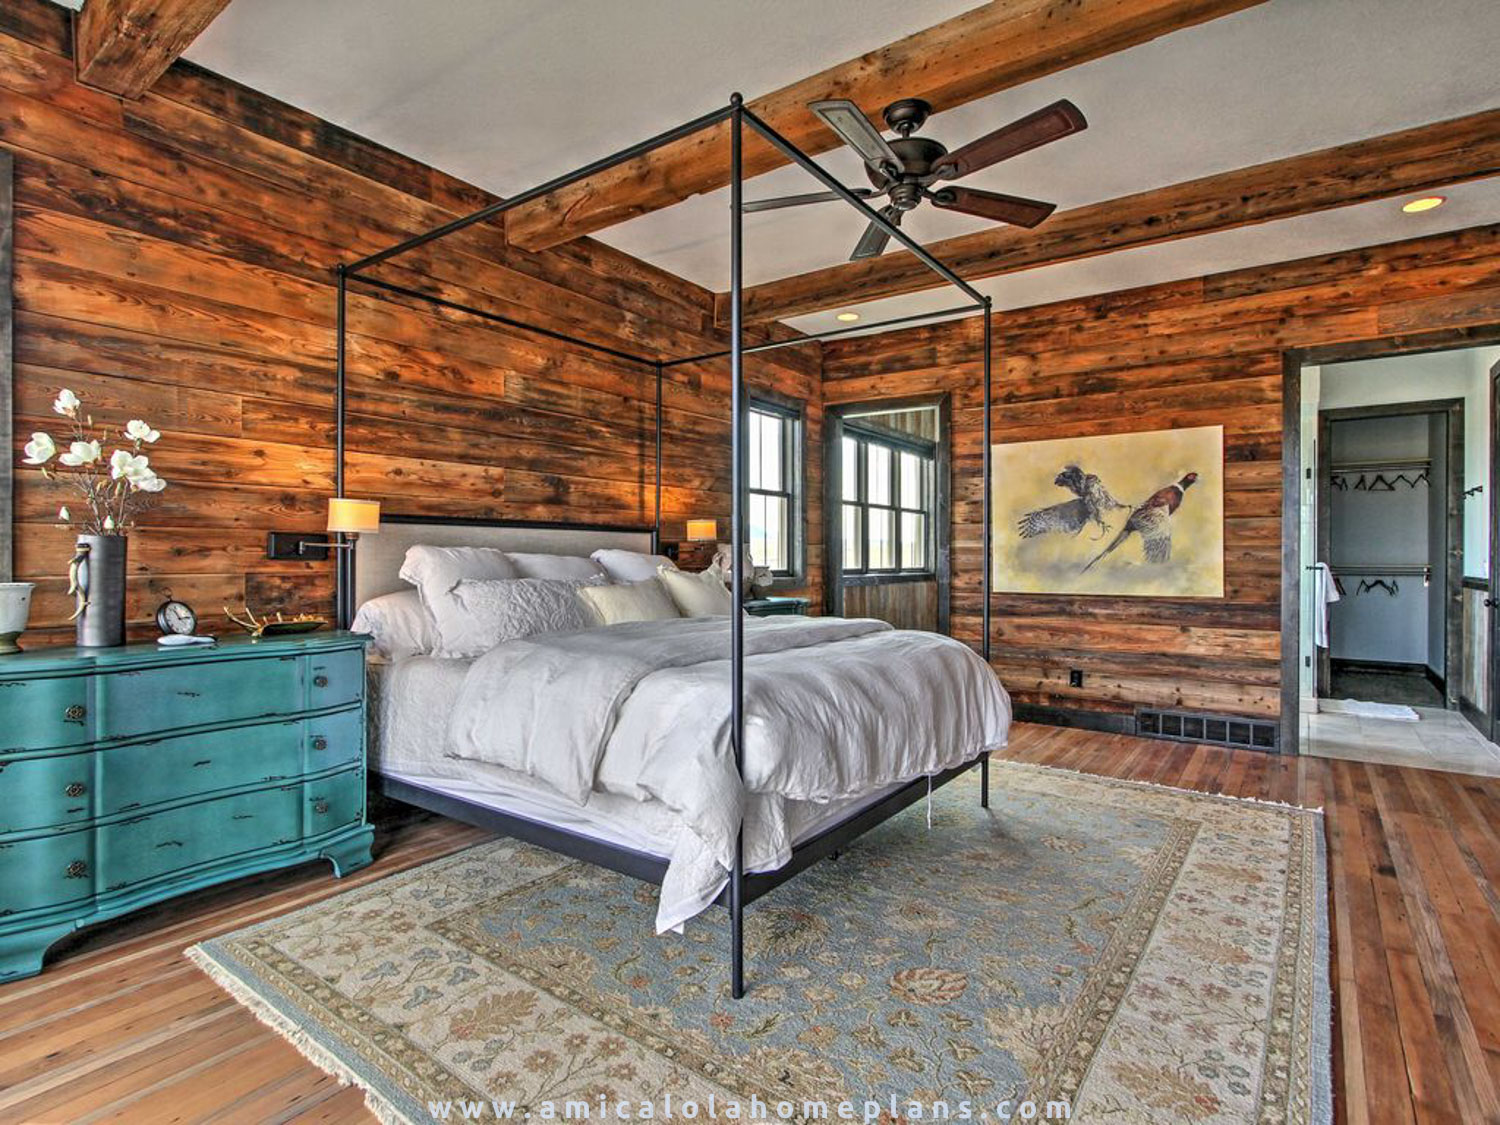 Skwalker Ranch Floor Plan by Klippel Residential Design Master Bedroom-11.jpg